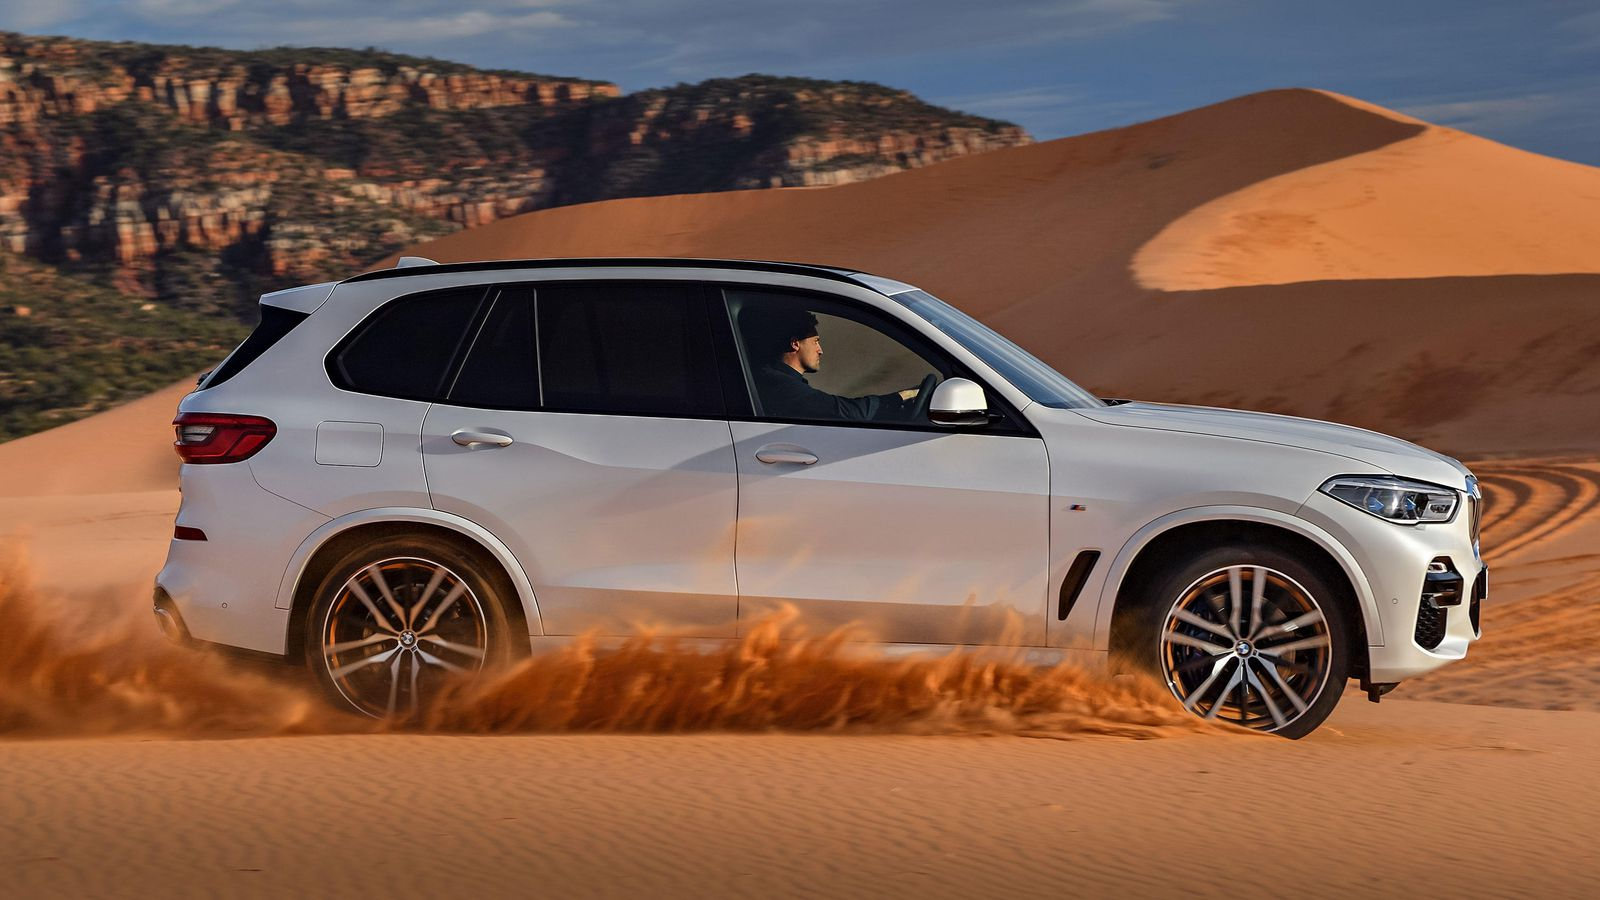 80 All New 2020 Next Gen BMW X5 Suv Release Date and Concept